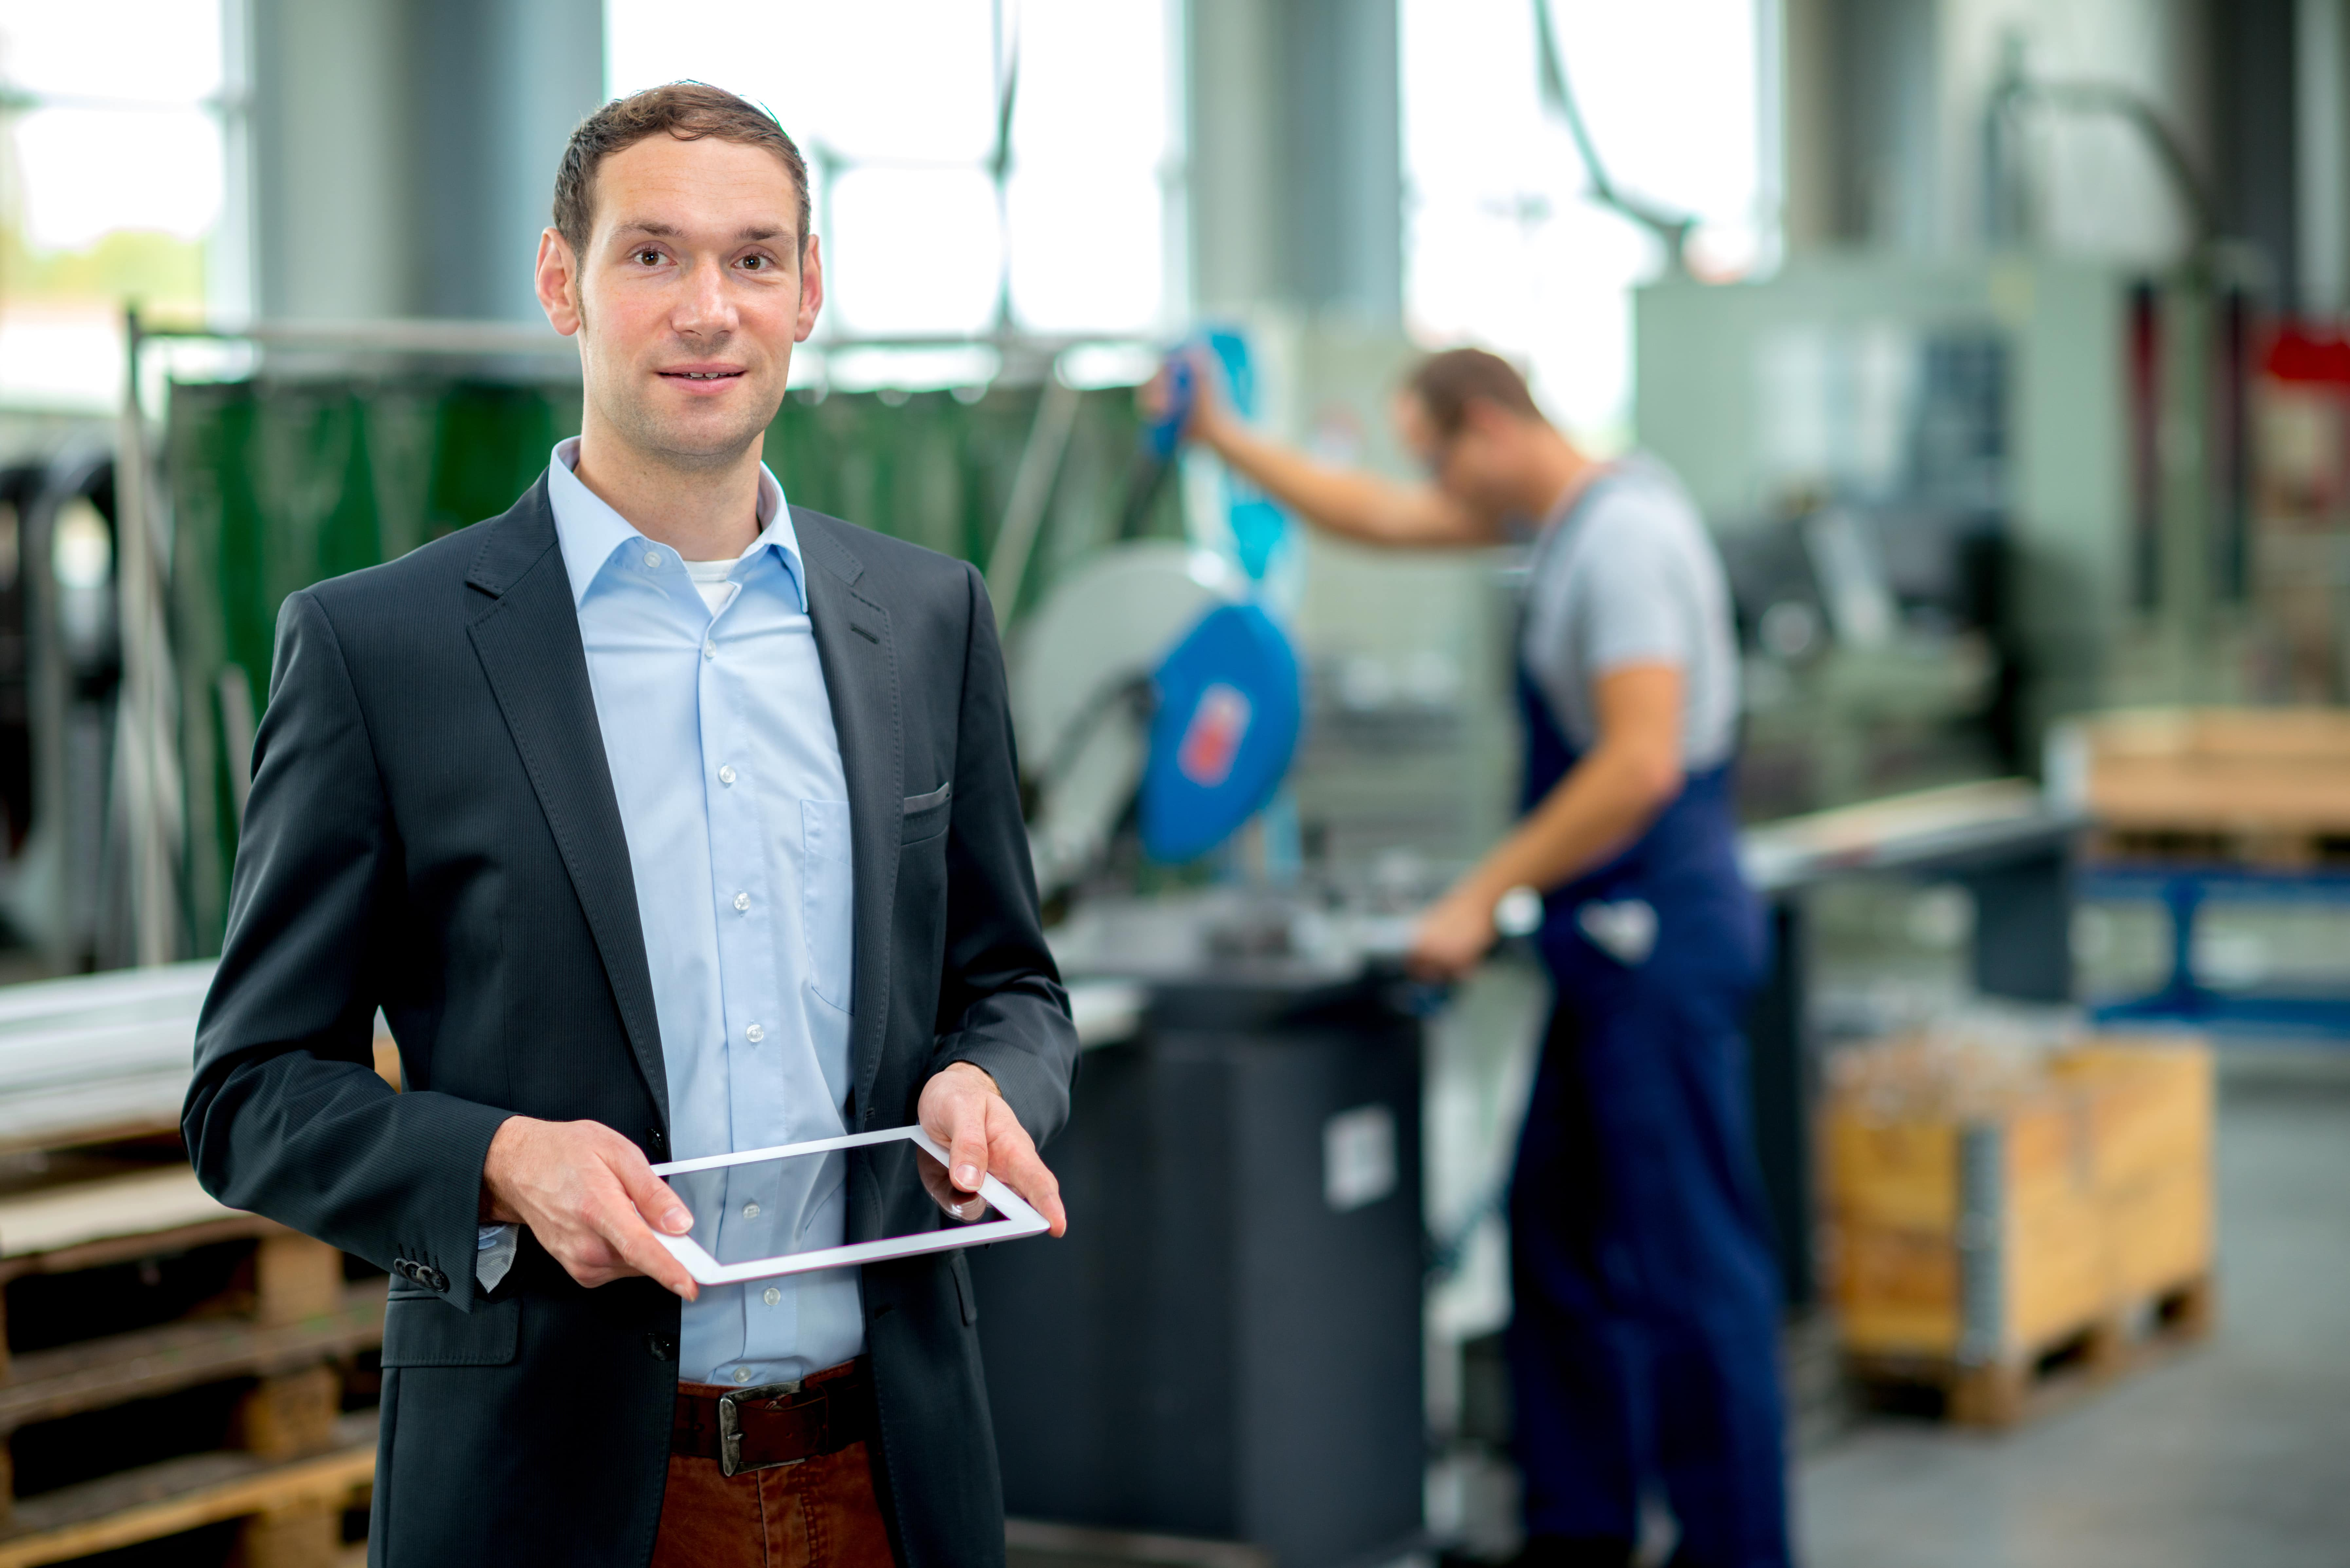 A man with a suit is holding a tablet in na industrial plant, looking straight to the camera. He seems friendly and positive. At the background, there is a blurred man working.